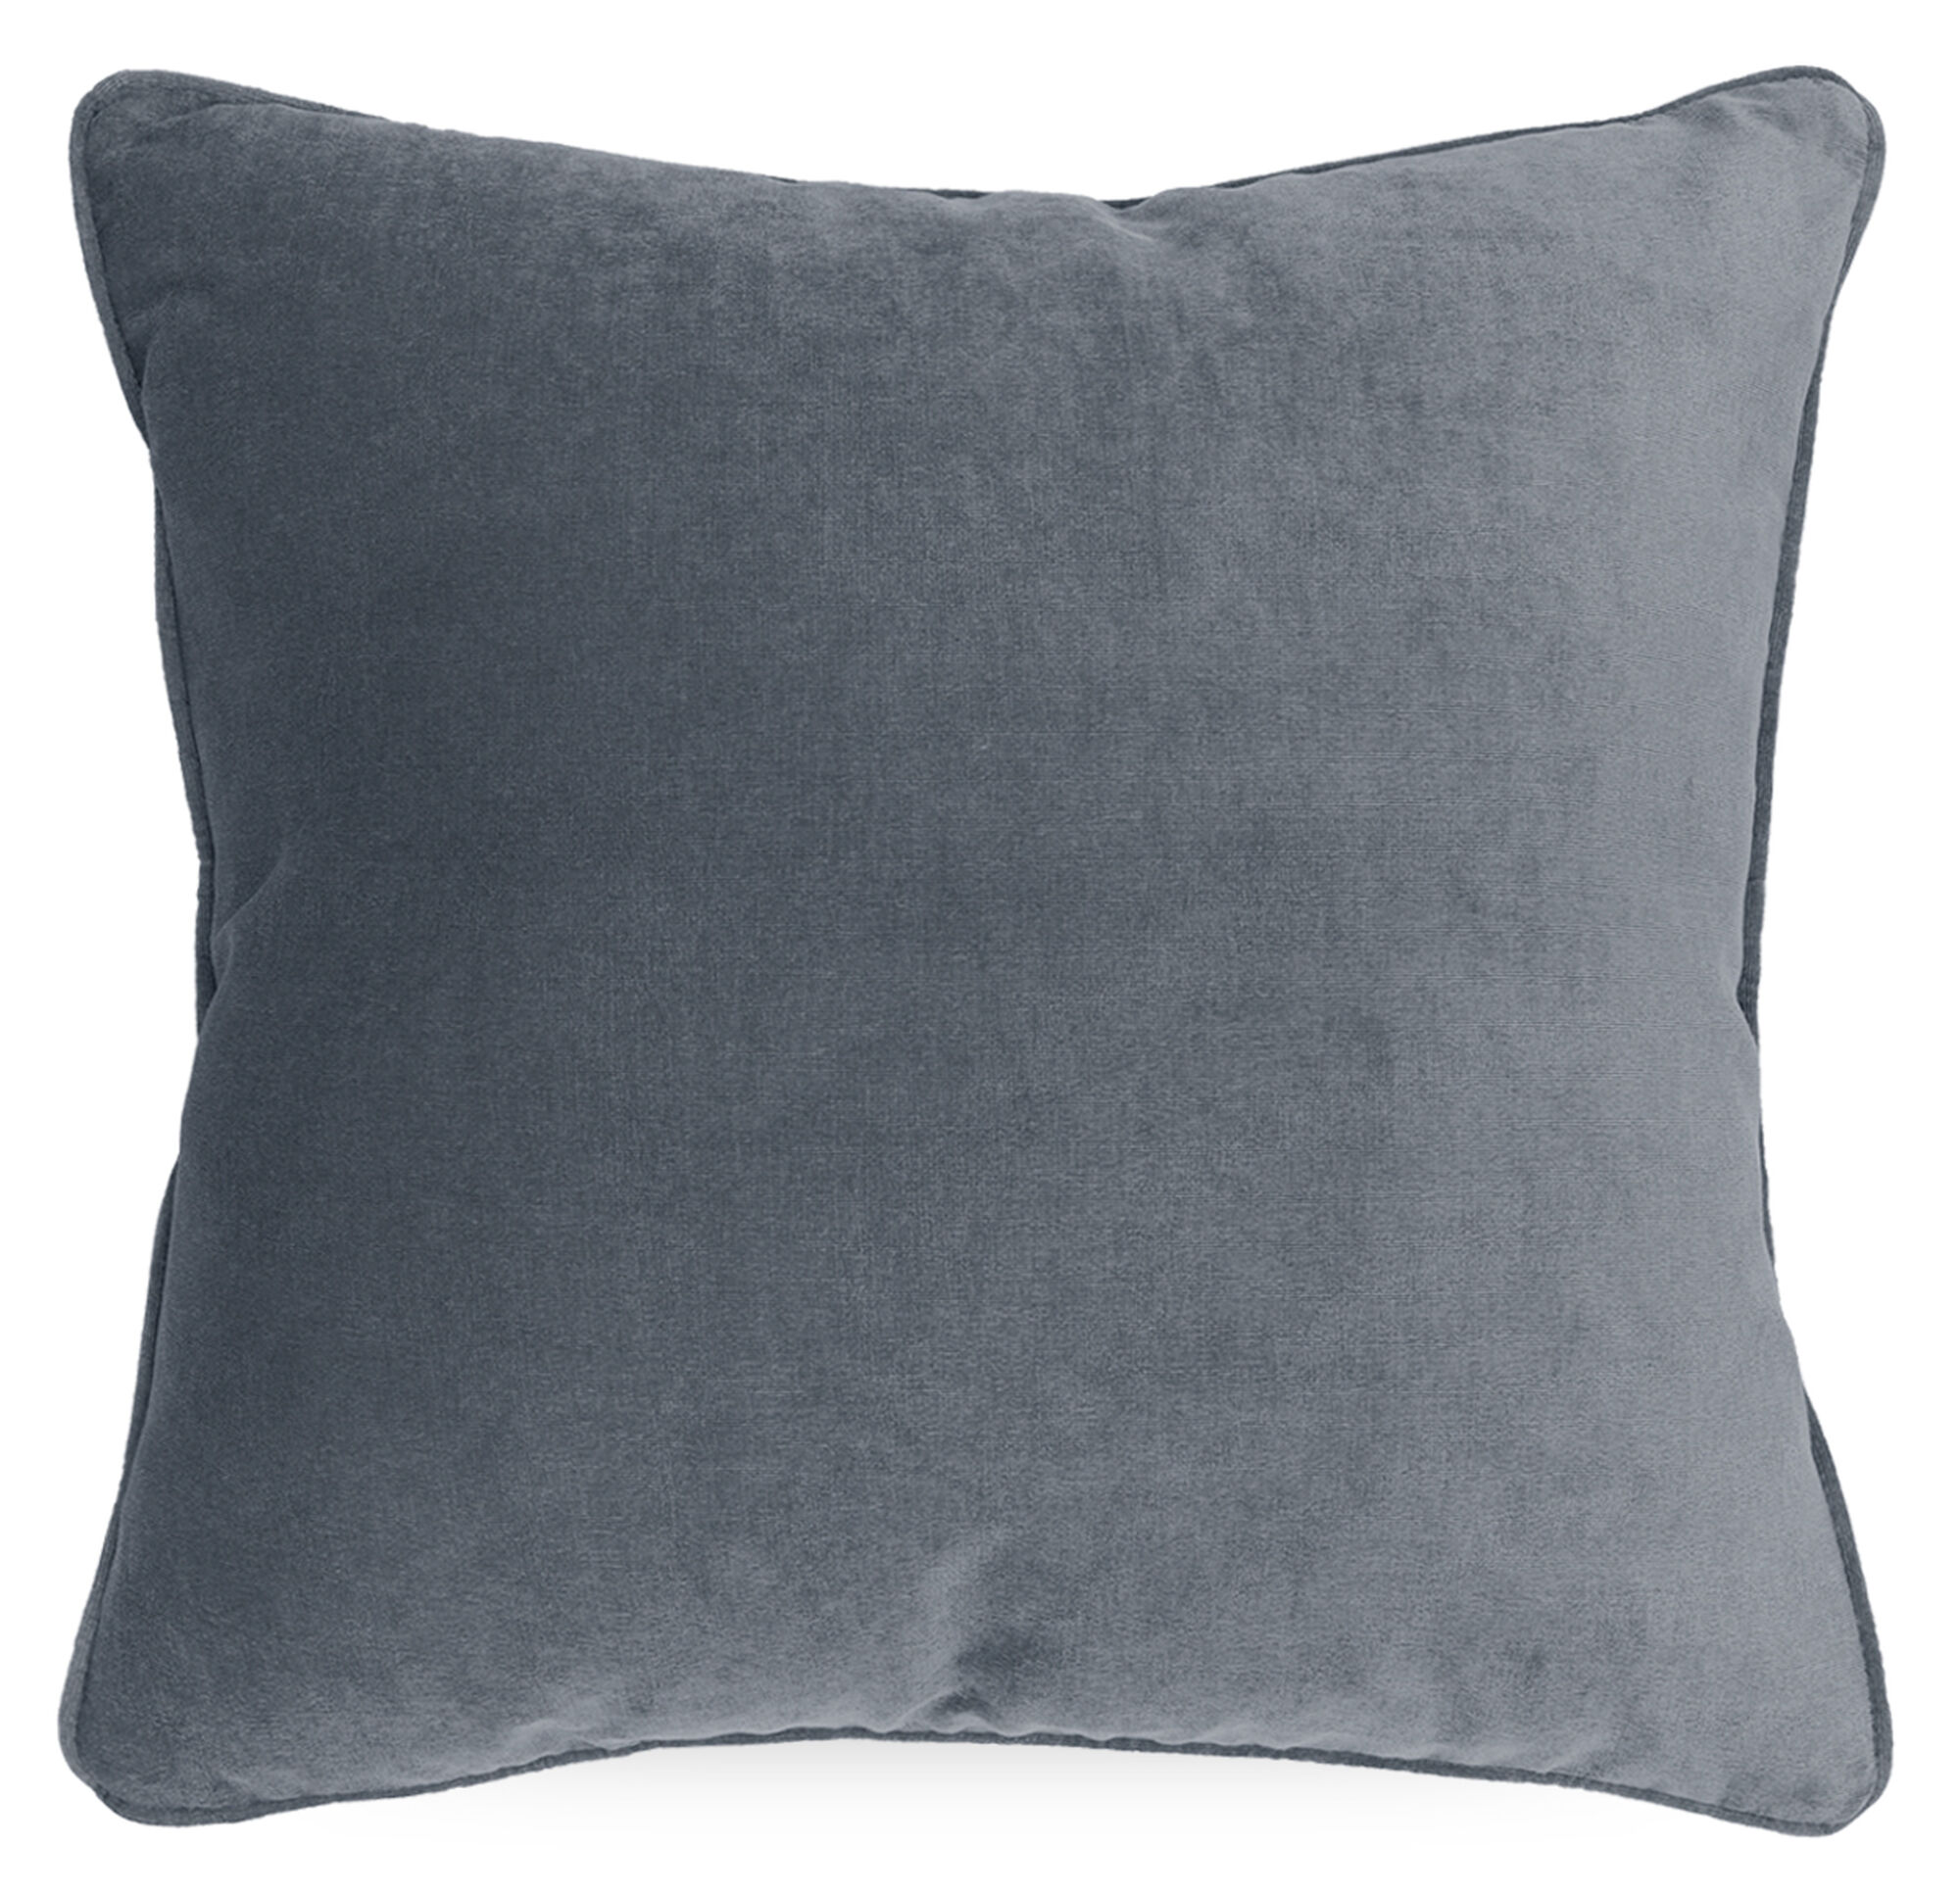 24 Square Throw Pillows : 24 IN. SQUARE THROW PILLOW